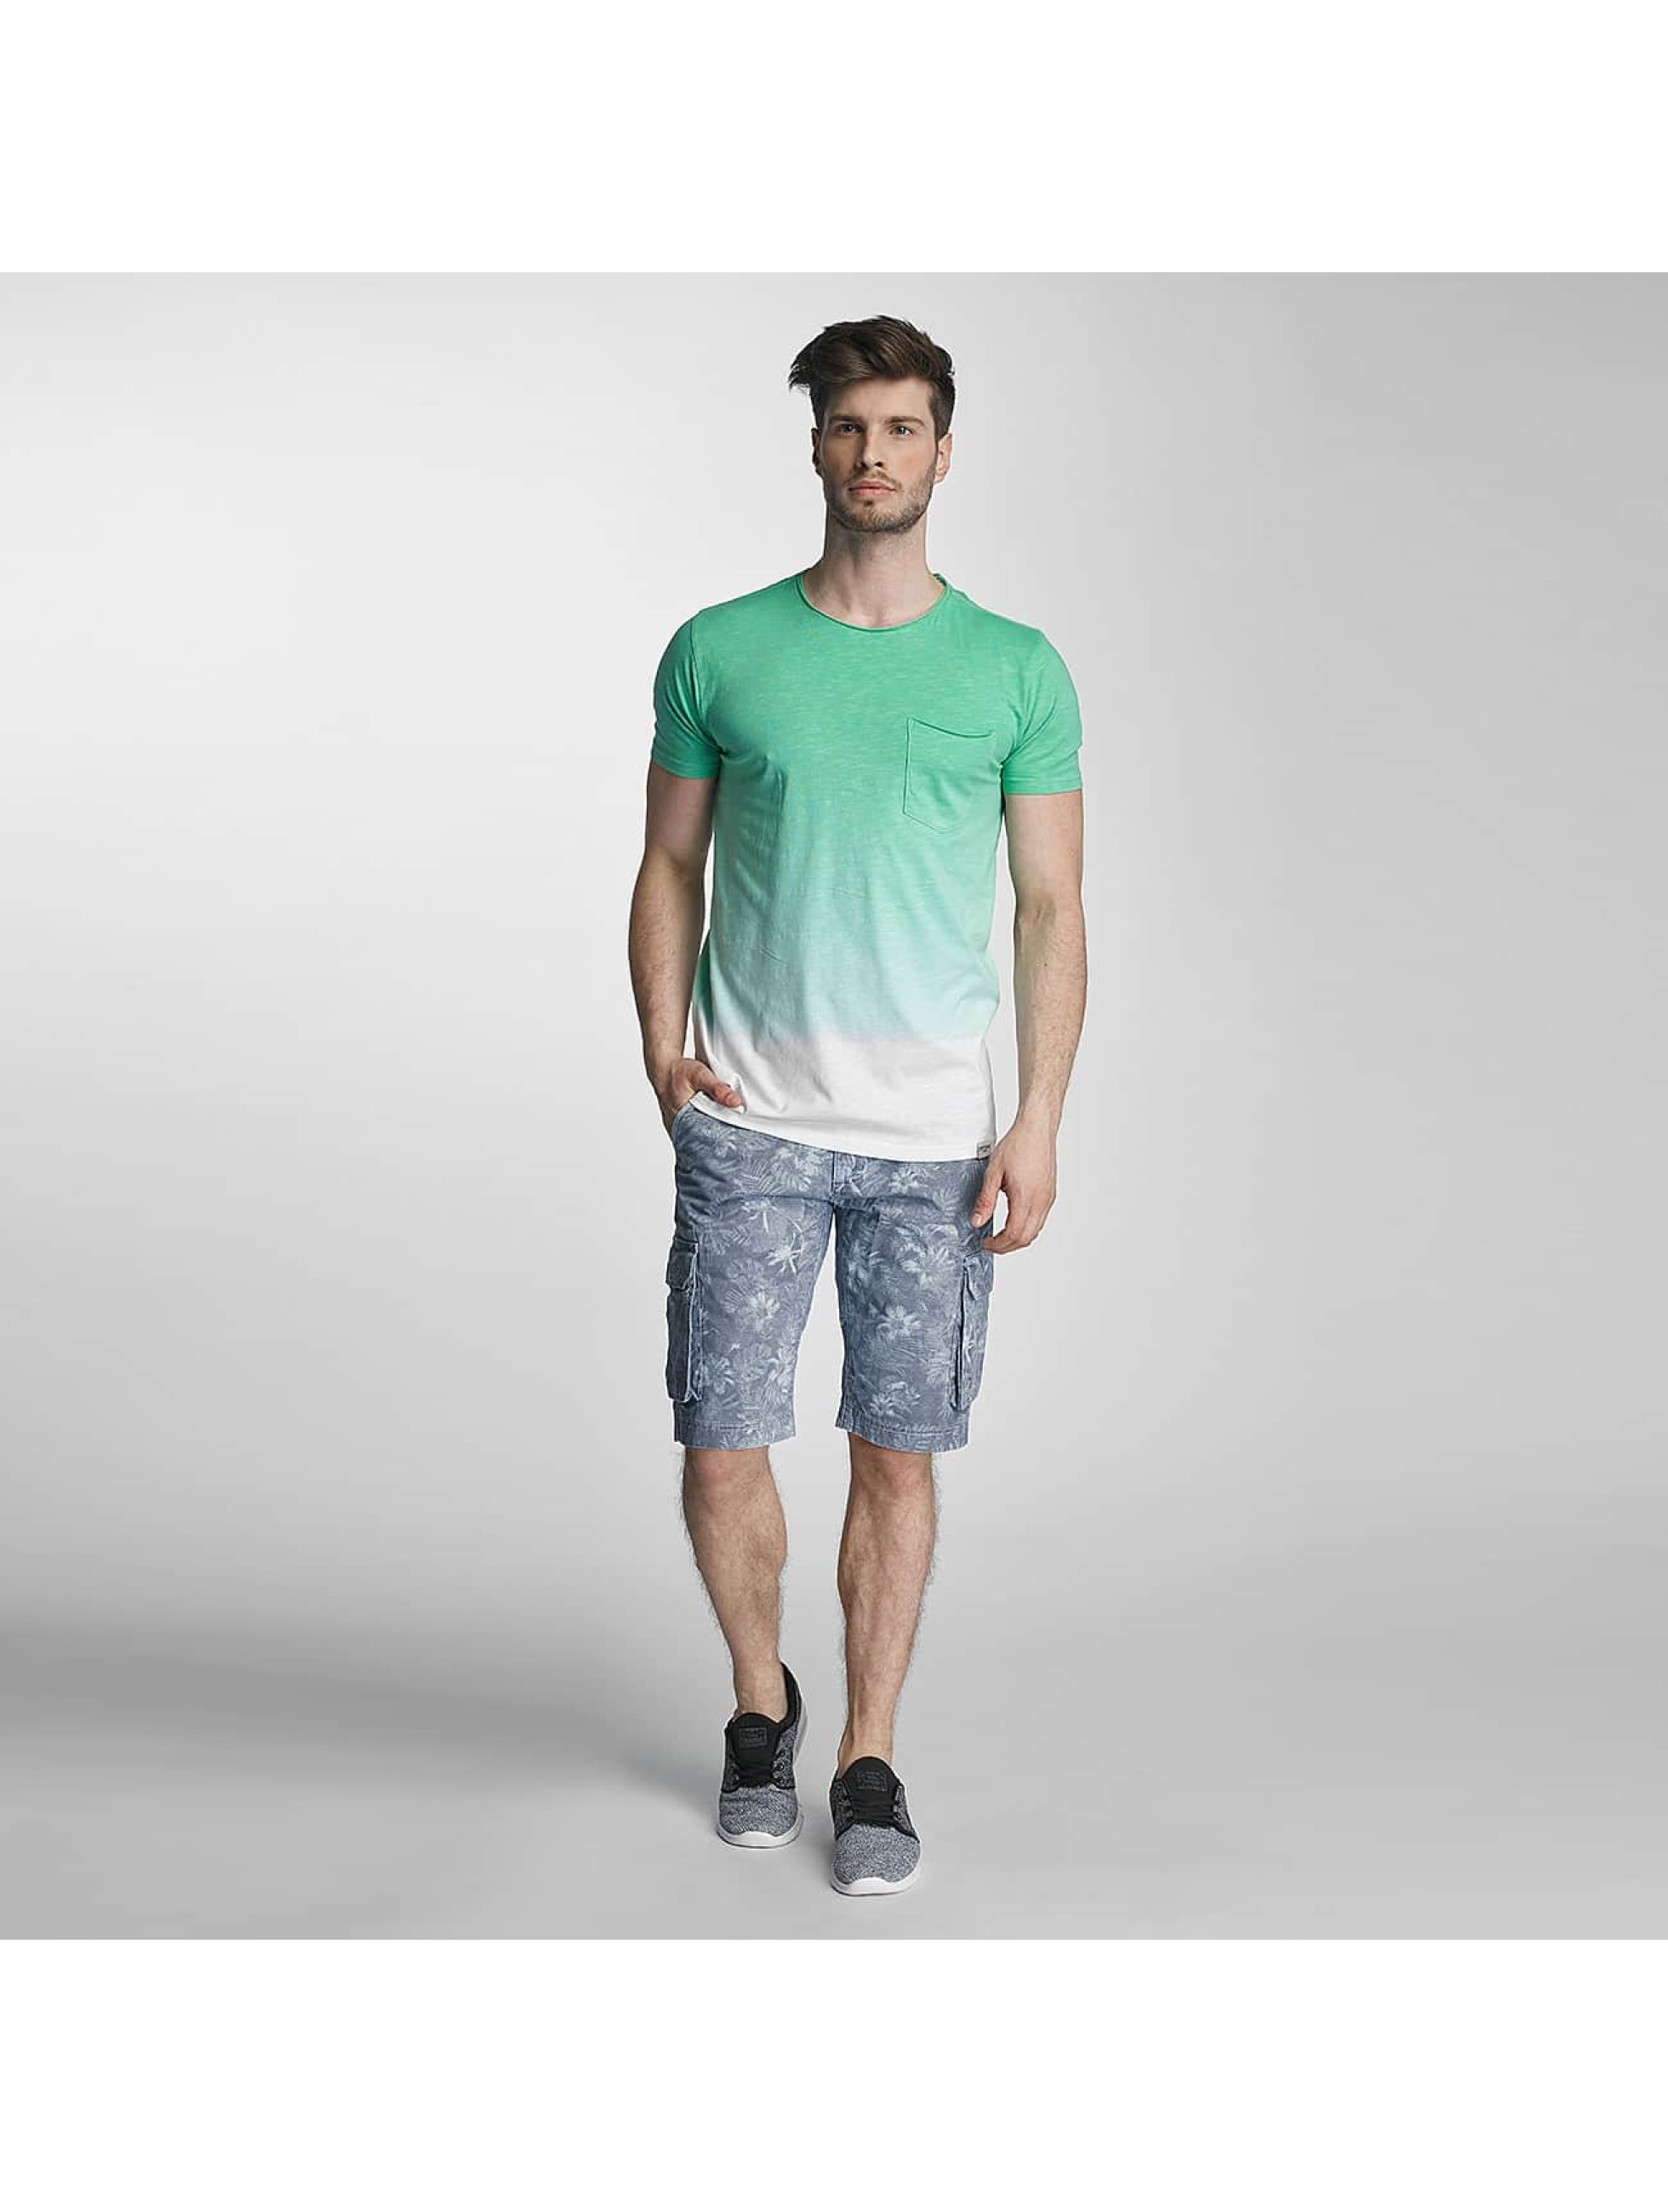 SHINE Original T-Shirt Dip Dyed green